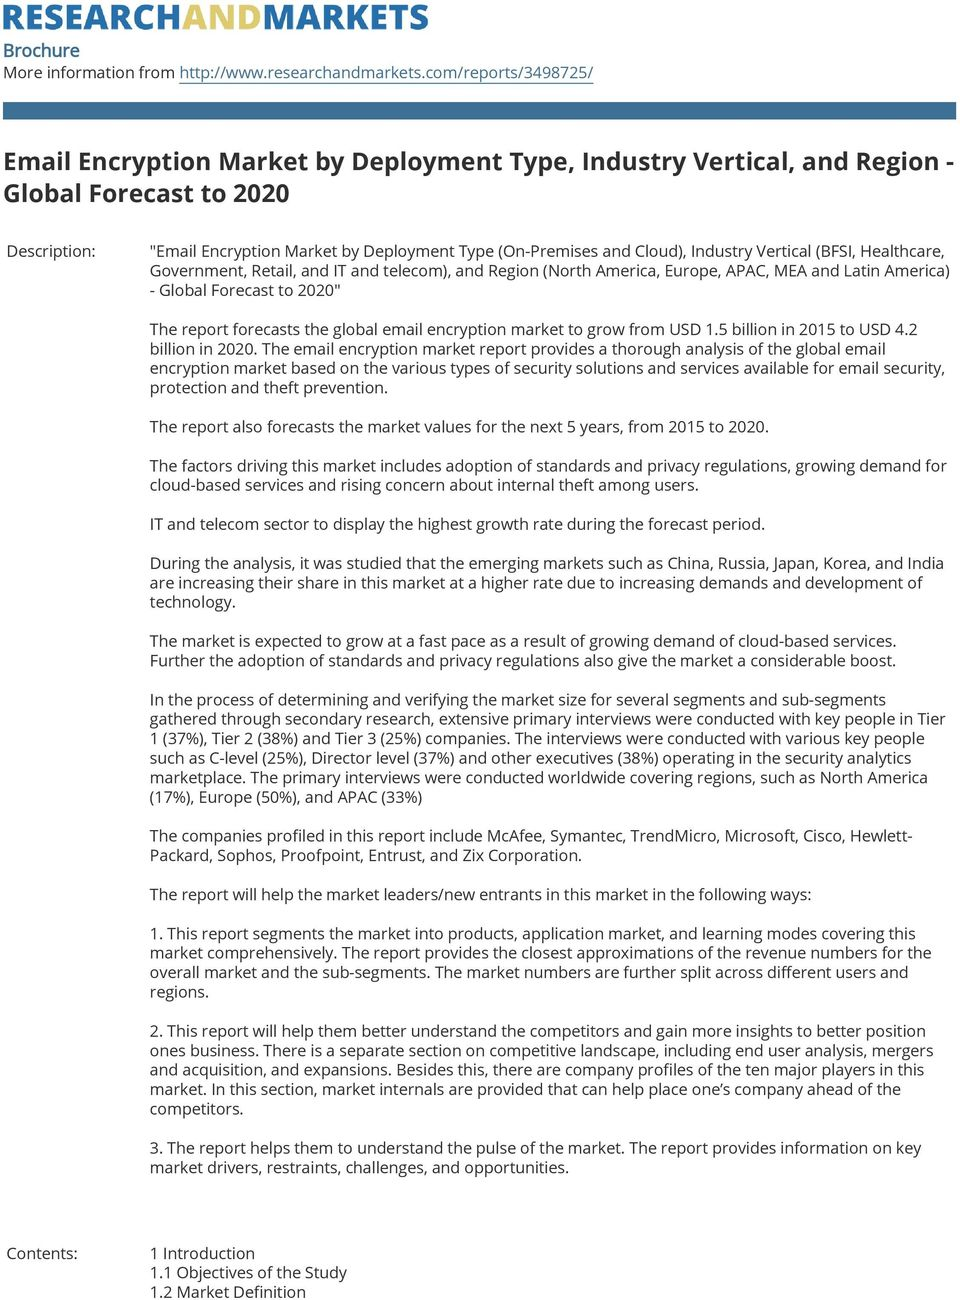 "Cloud), Industry Vertical (BFSI, Healthcare, Government, Retail, and IT and telecom), and Region (North America, Europe, APAC, MEA and Latin America) - Global Forecast to 2020"" The report forecasts"